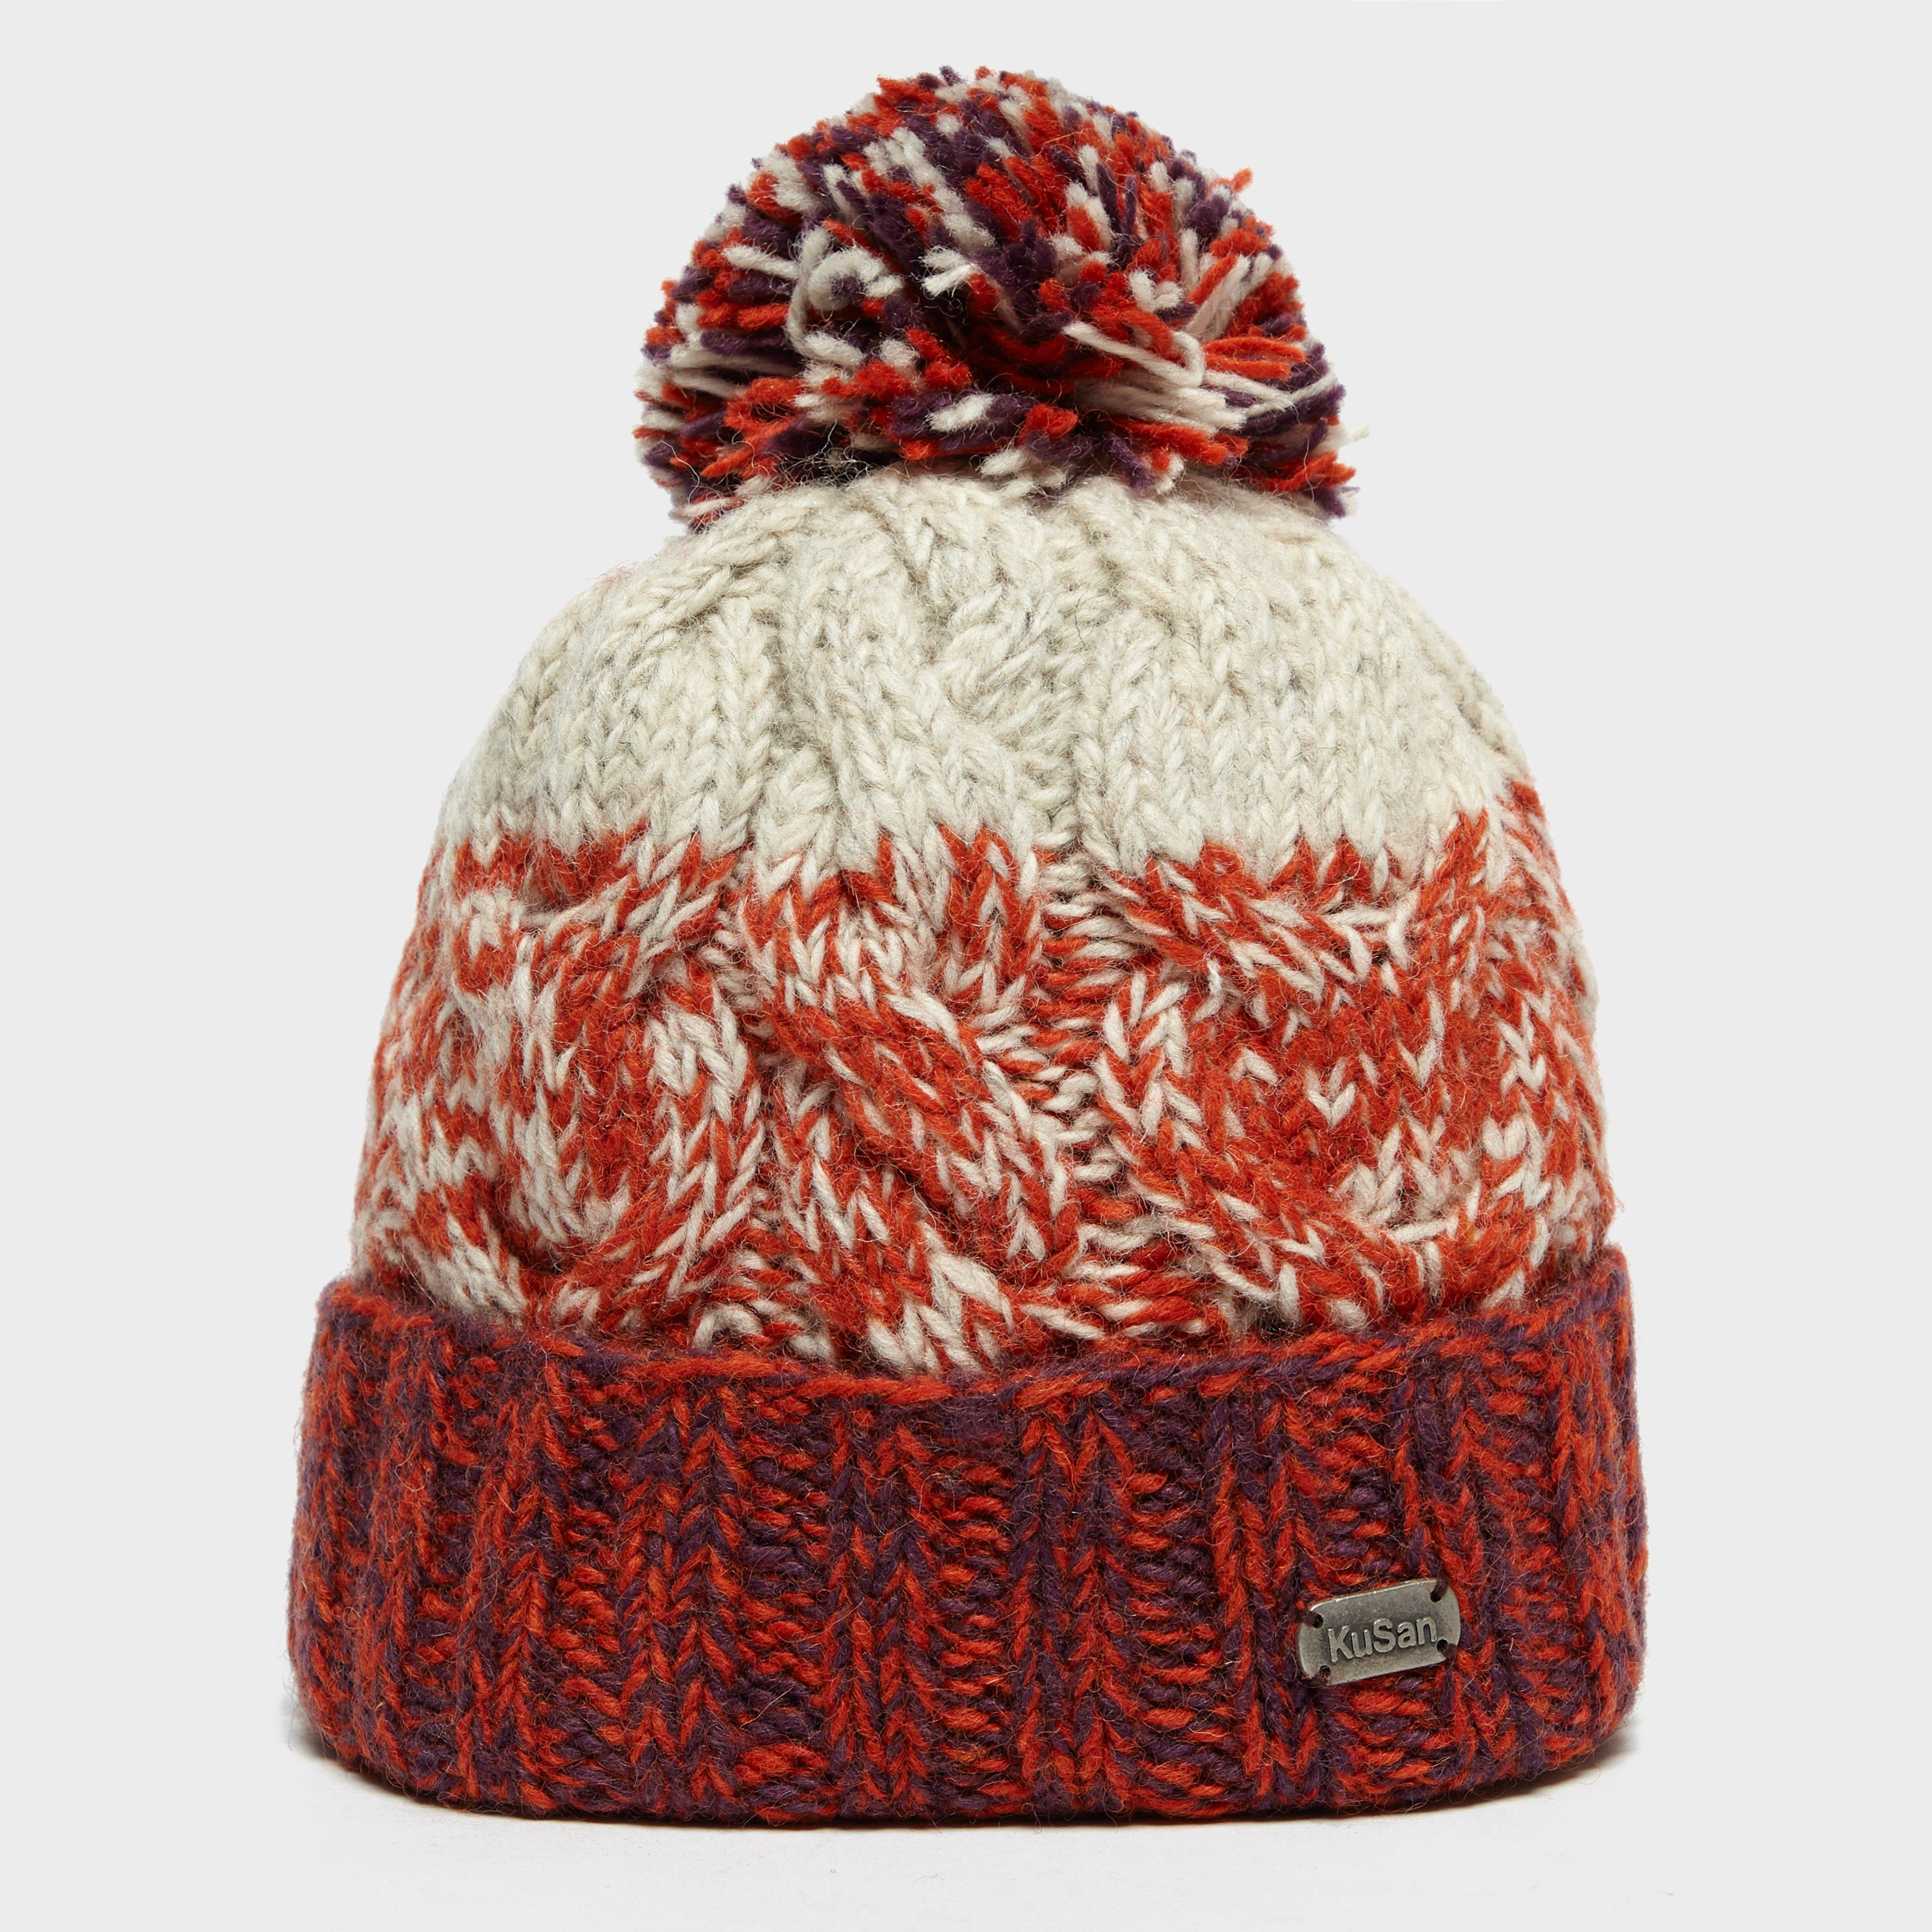 Kusan Women's Cable Bobble Beanie Hat, Red